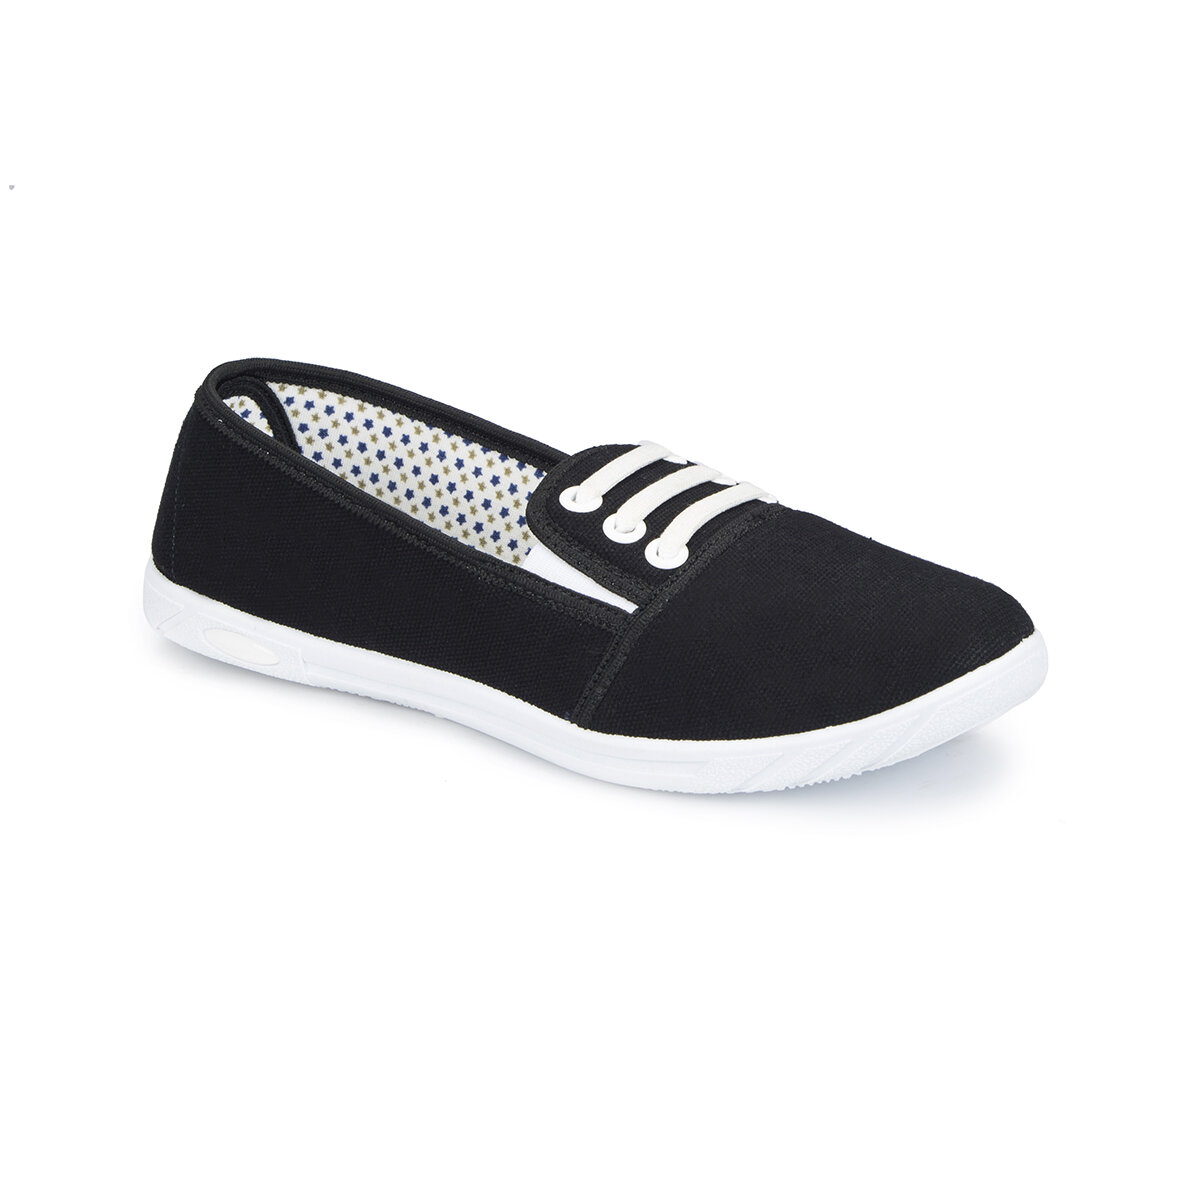 FLO 81. 354987.Z Black Women Slip On Shoes Polaris